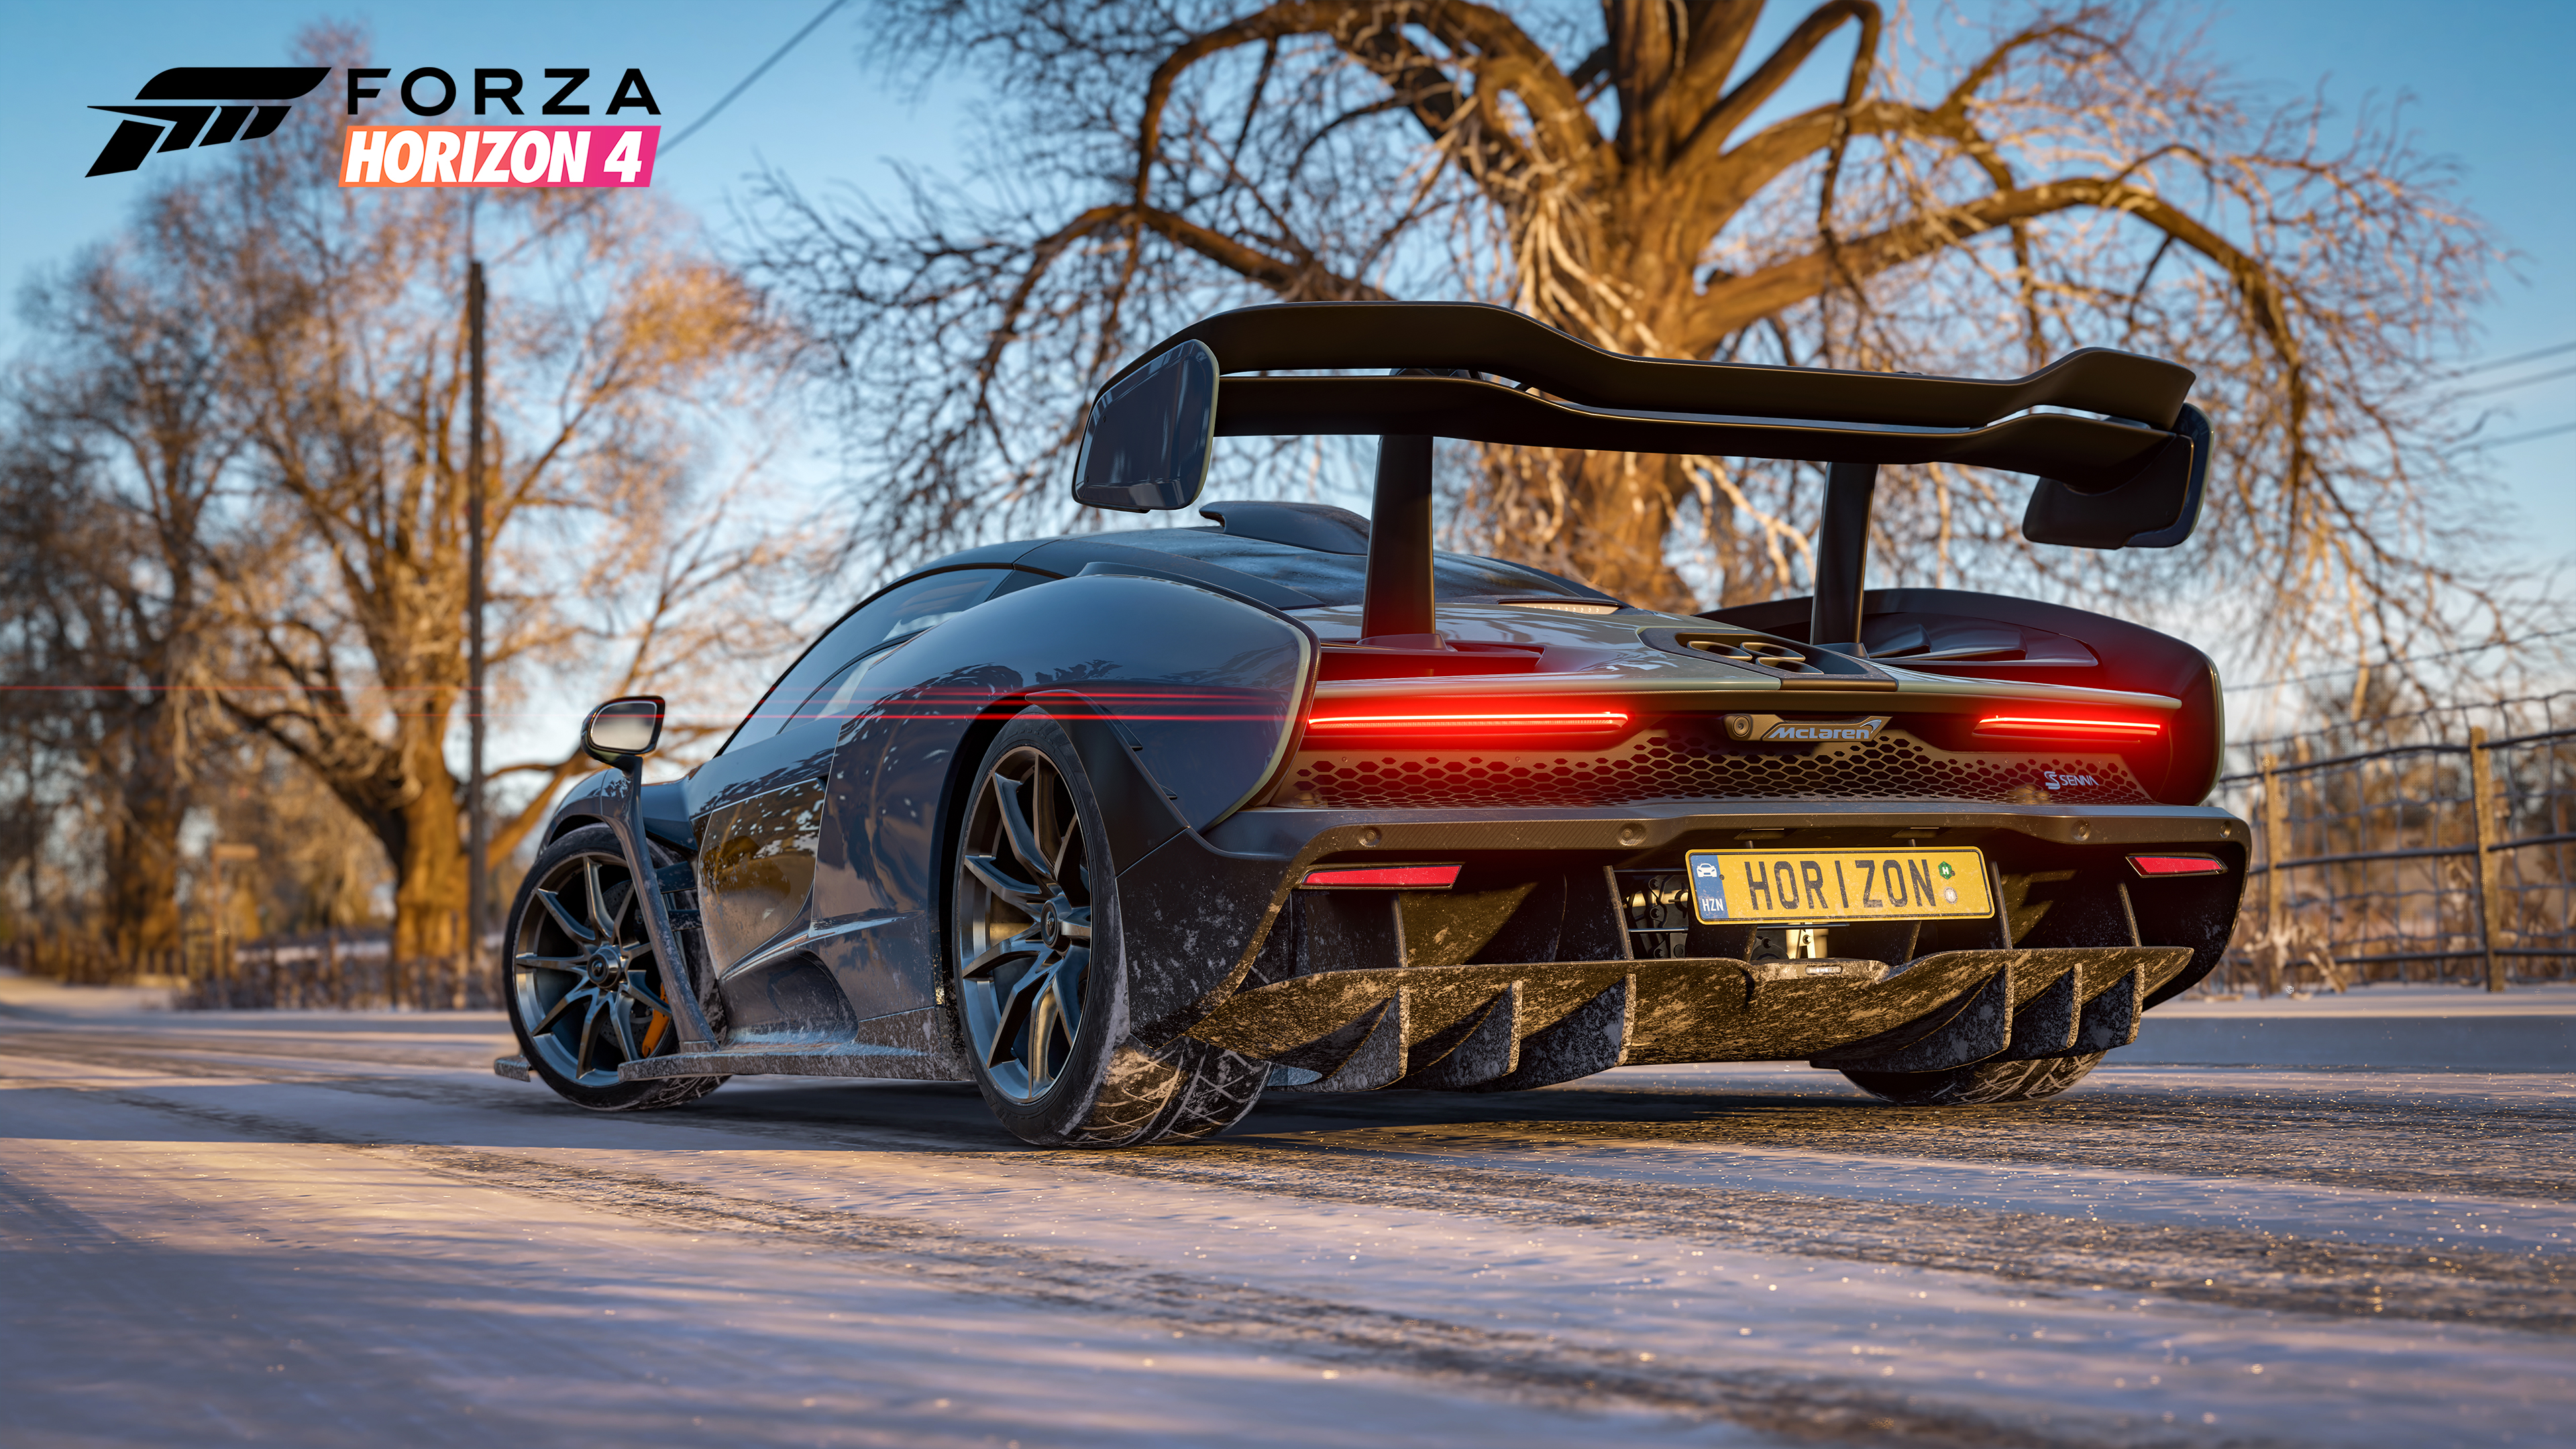 forza horizon 4 free download pc crack